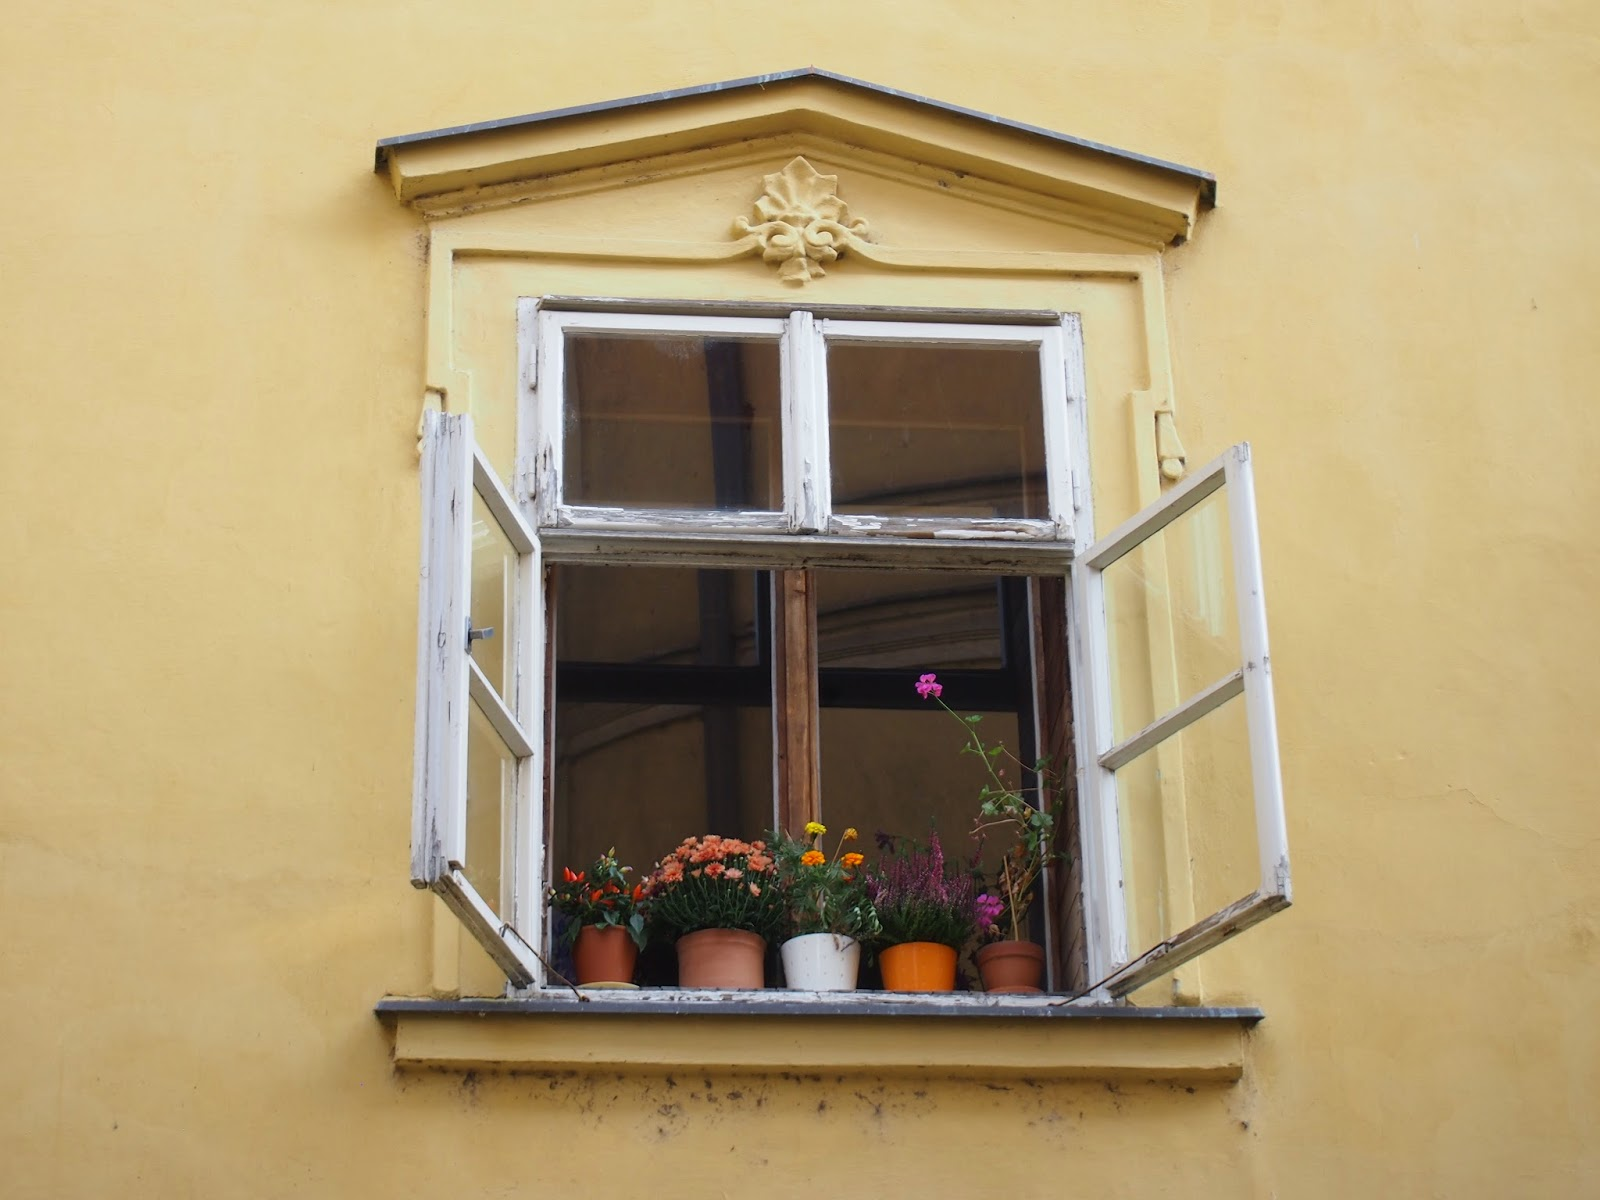 A yellow building with a white window sill with flower pots